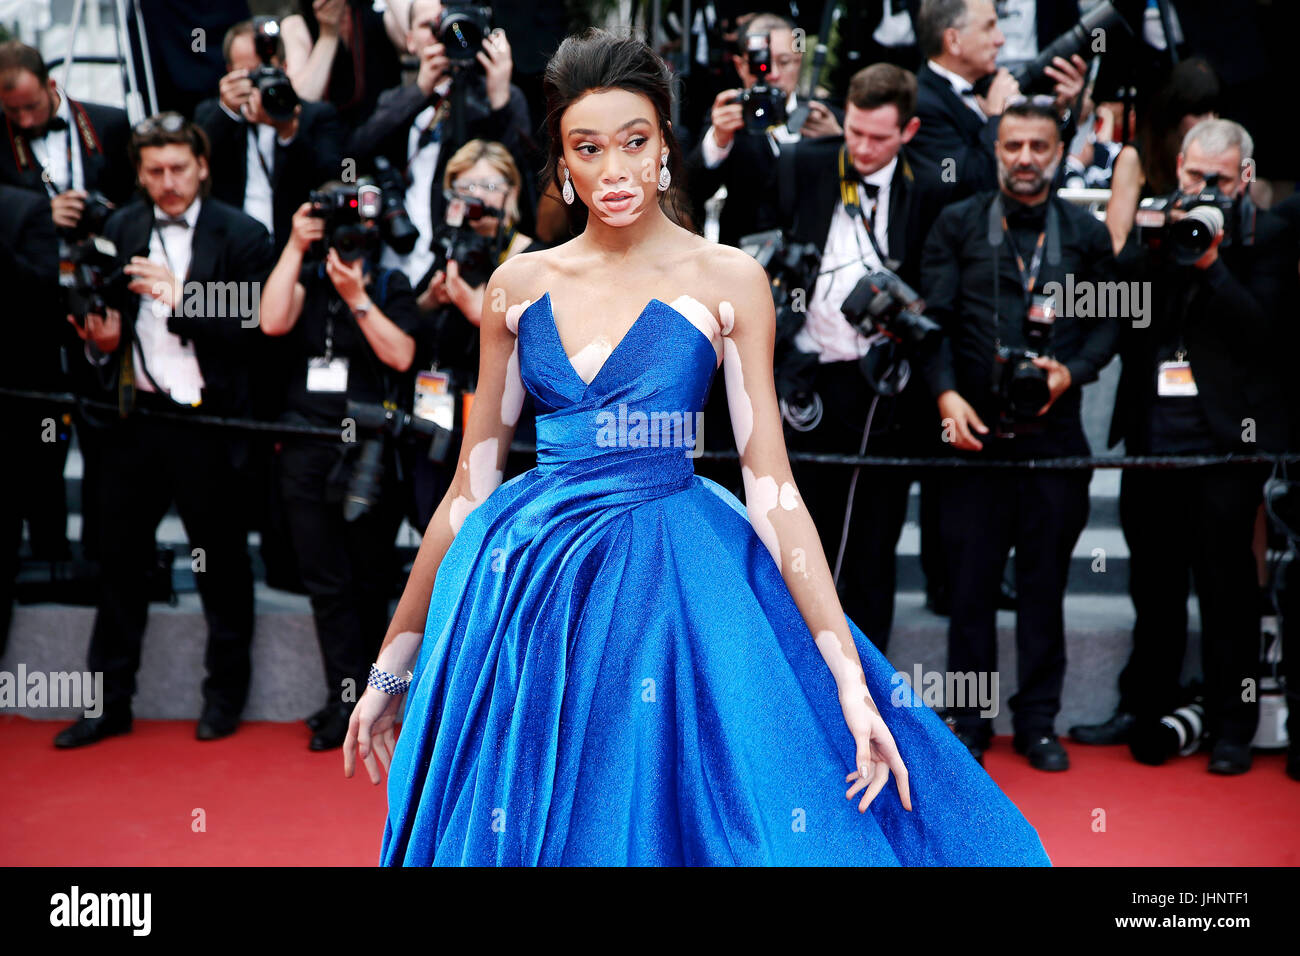 CANNES, FRANCE - MAY 18: Winnie Harlow attends the 'Loveless' premiere during the 70th Cannes Film Festival - Stock Image